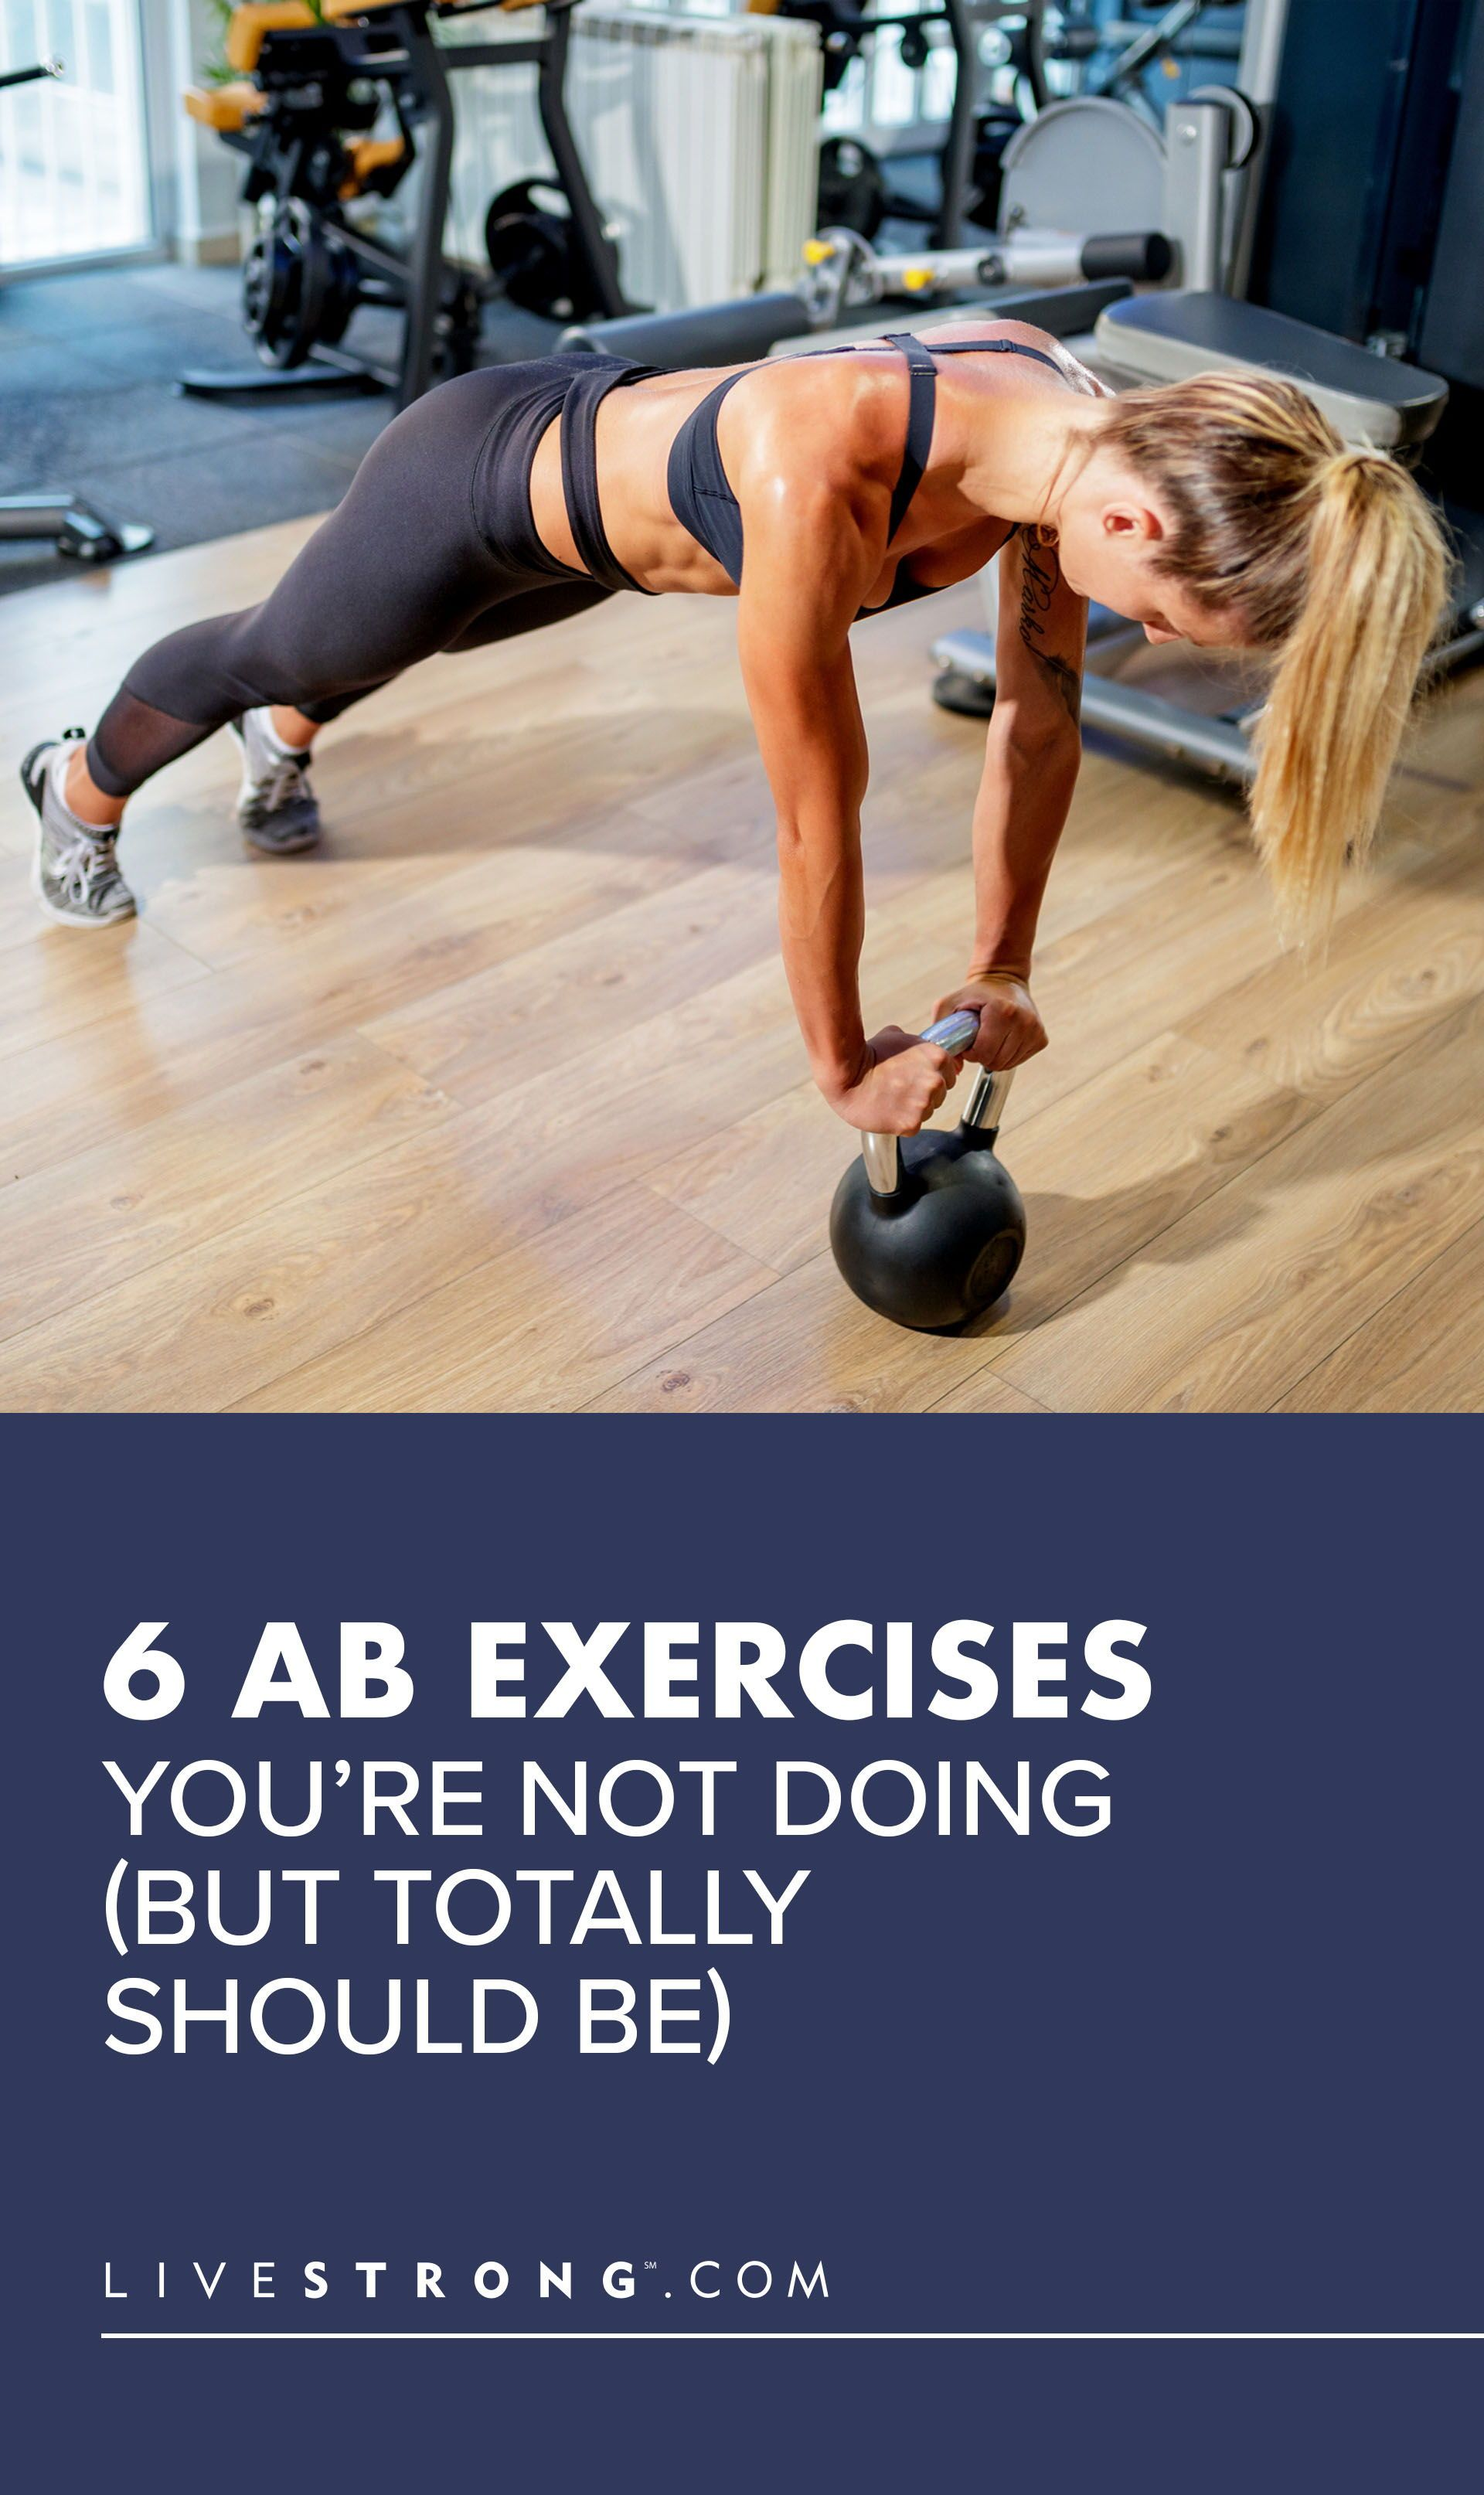 6 Ab Exercises You're Not Doing (But Totally Should Be)